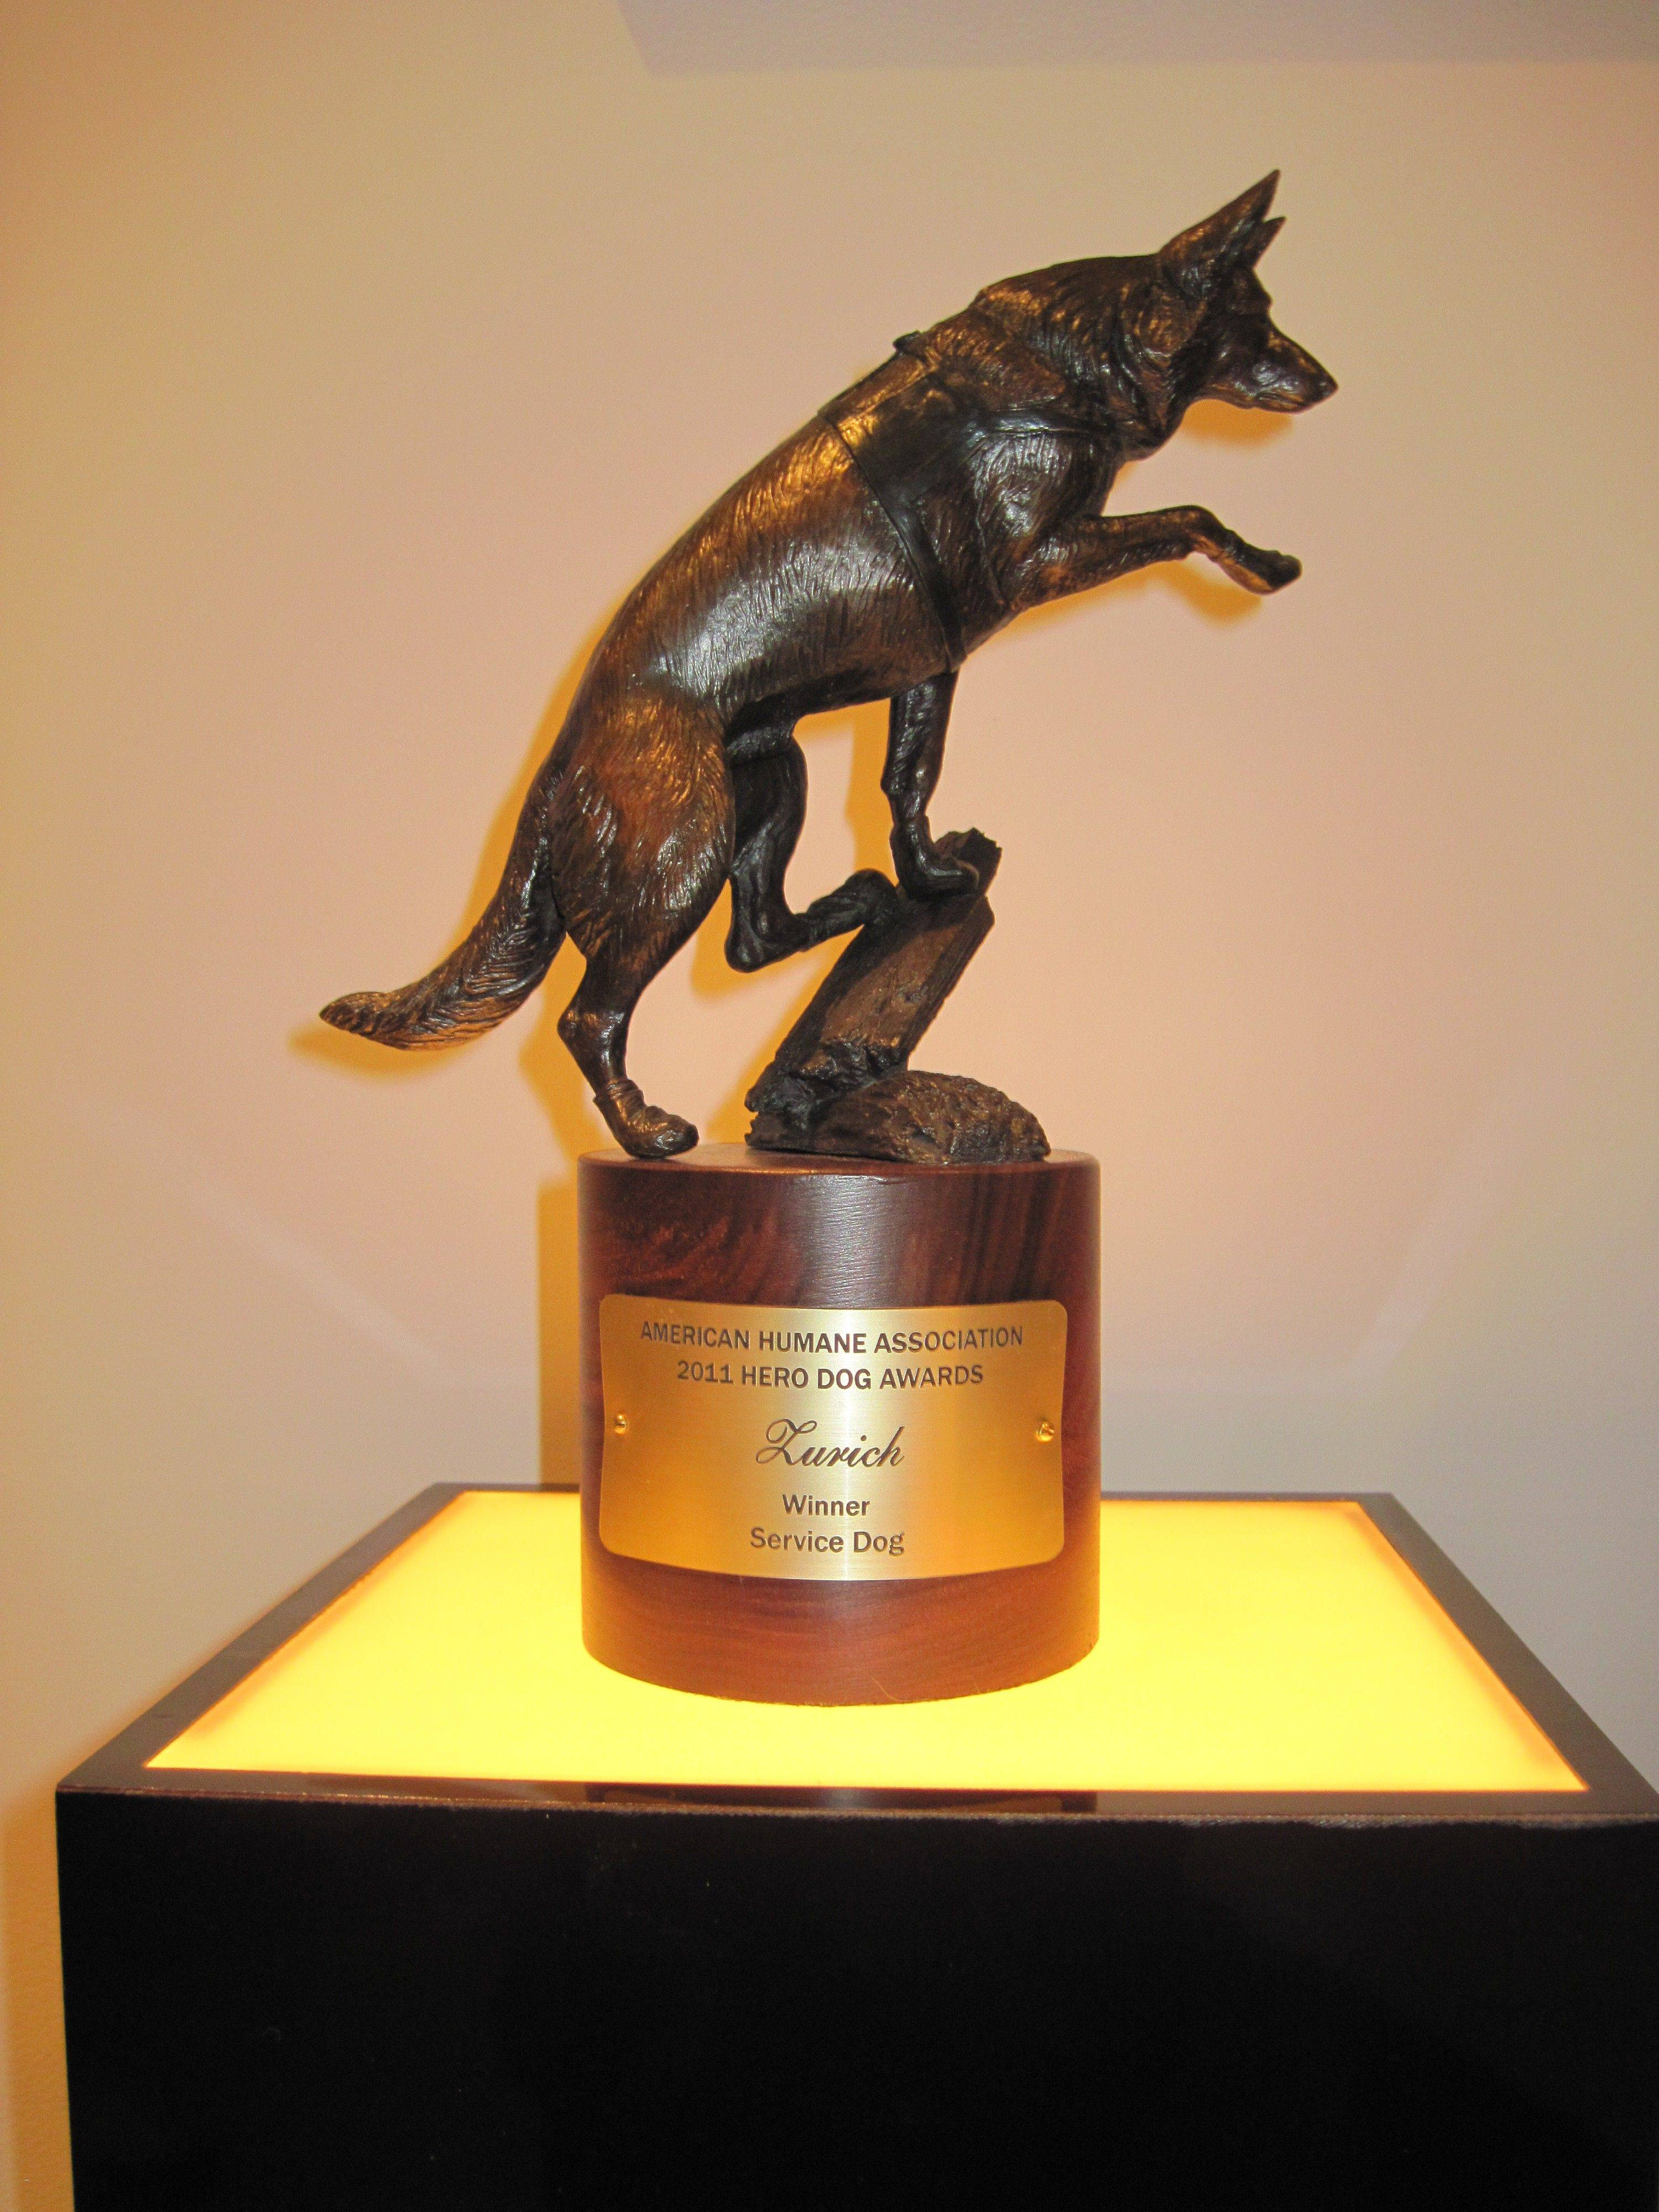 This nearly foot-high brass dog statuette was awarded to Des Plaines service dog, Zurich, a 9-year-old yellow Labrador retriever, as a trophy for being one of eight finalists in the first American Humane Association Hero Dog Awards.